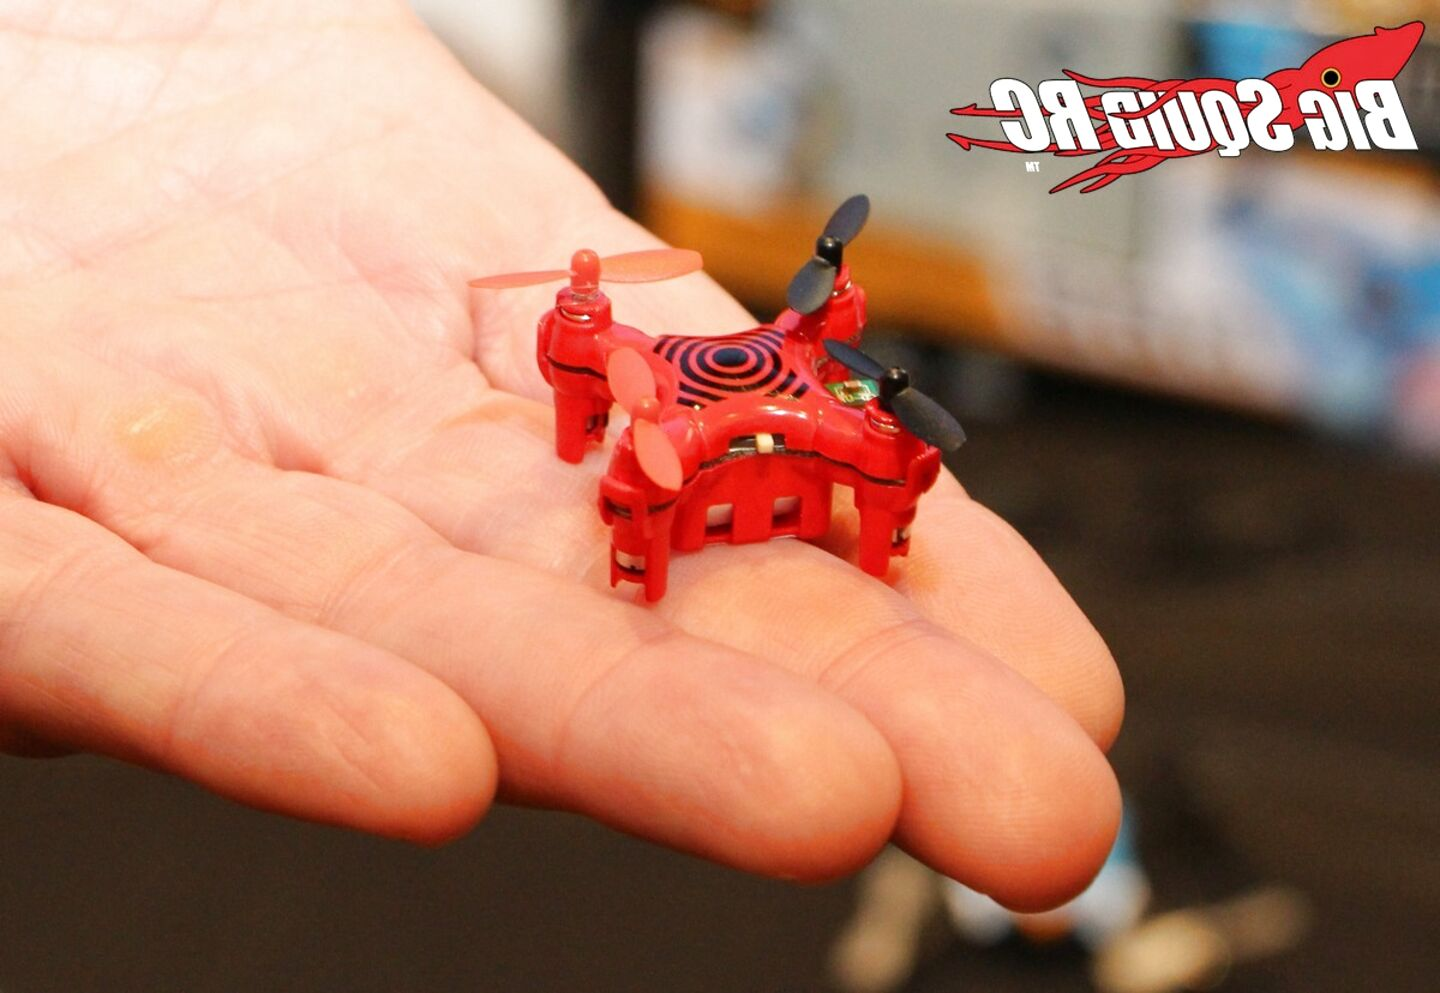 micro quadcopter for sale